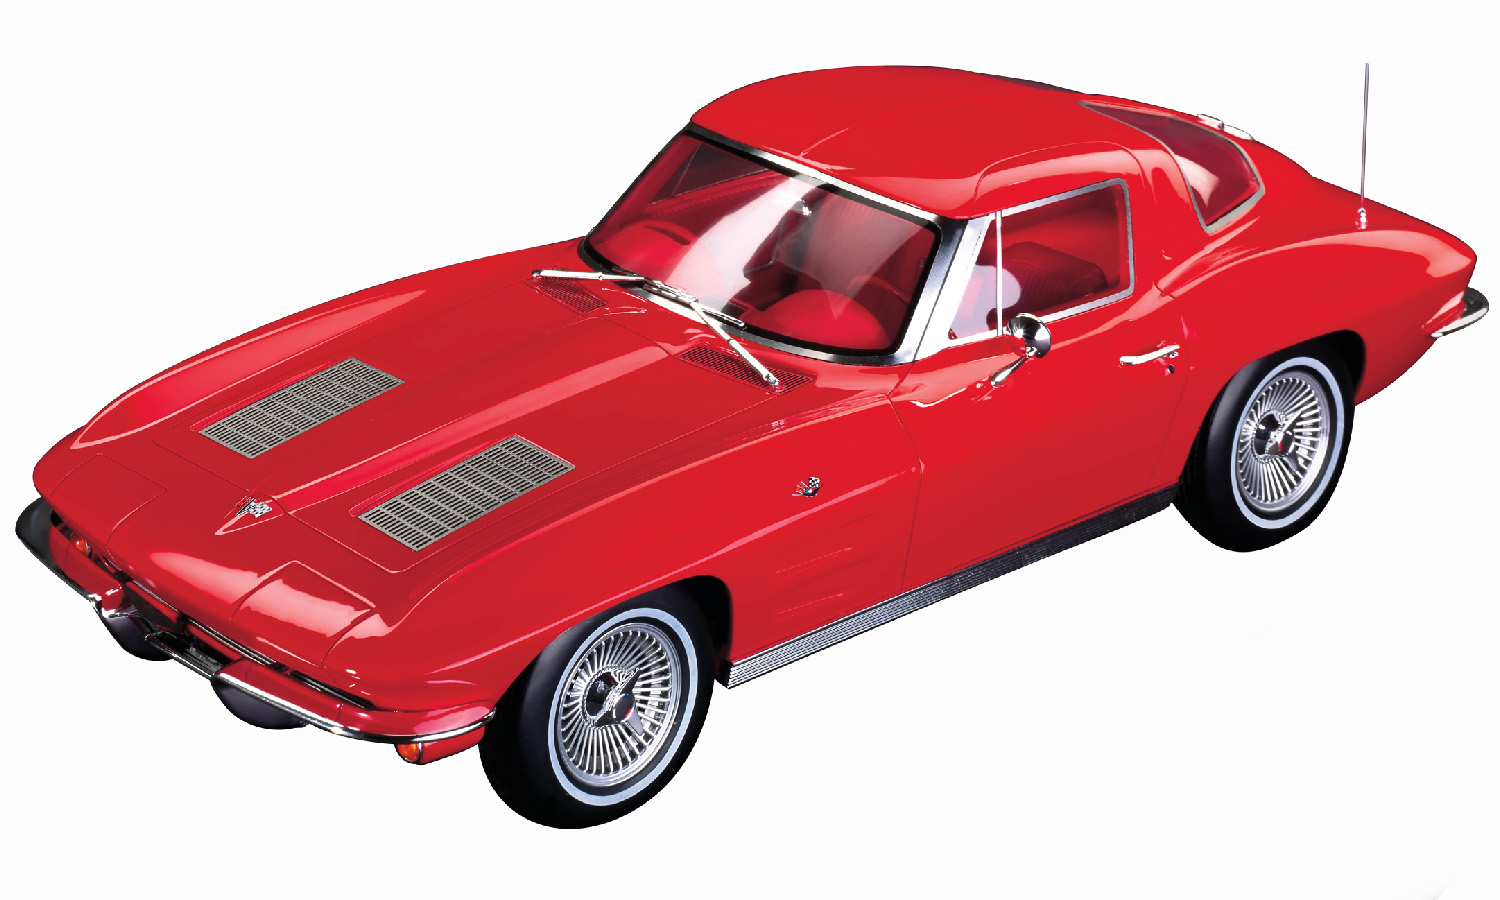 1963 Chevrolet Corvette Split Window Riverside Red with Red Interior 1 12 Model Car by GT Spirit for Acme by GT Spirit